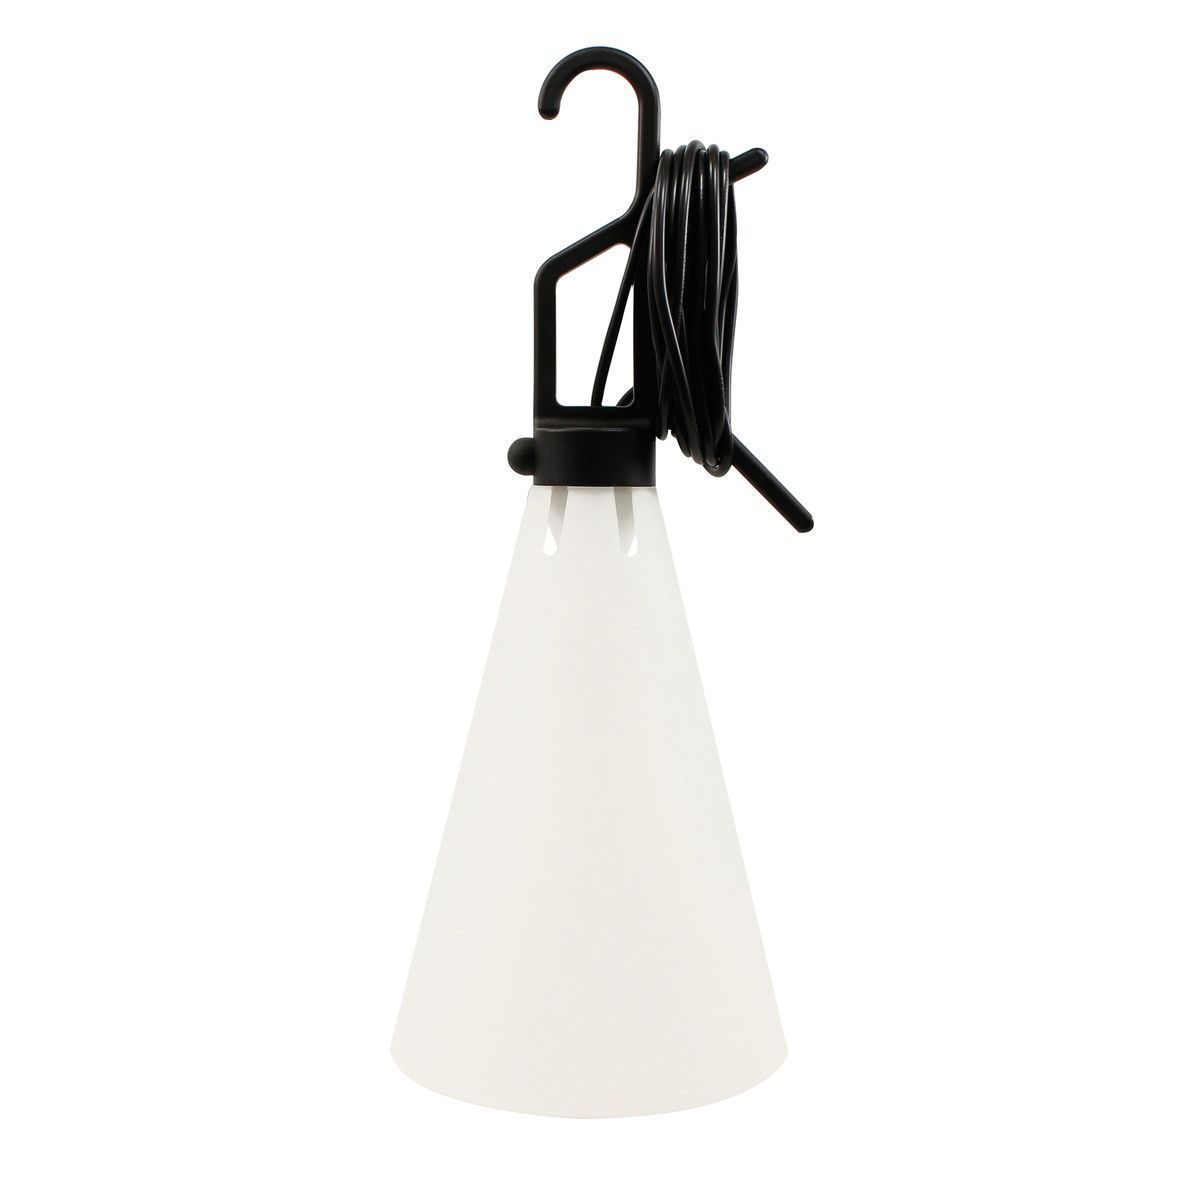 Lustra Multipurpose light Mayday by Flos in black